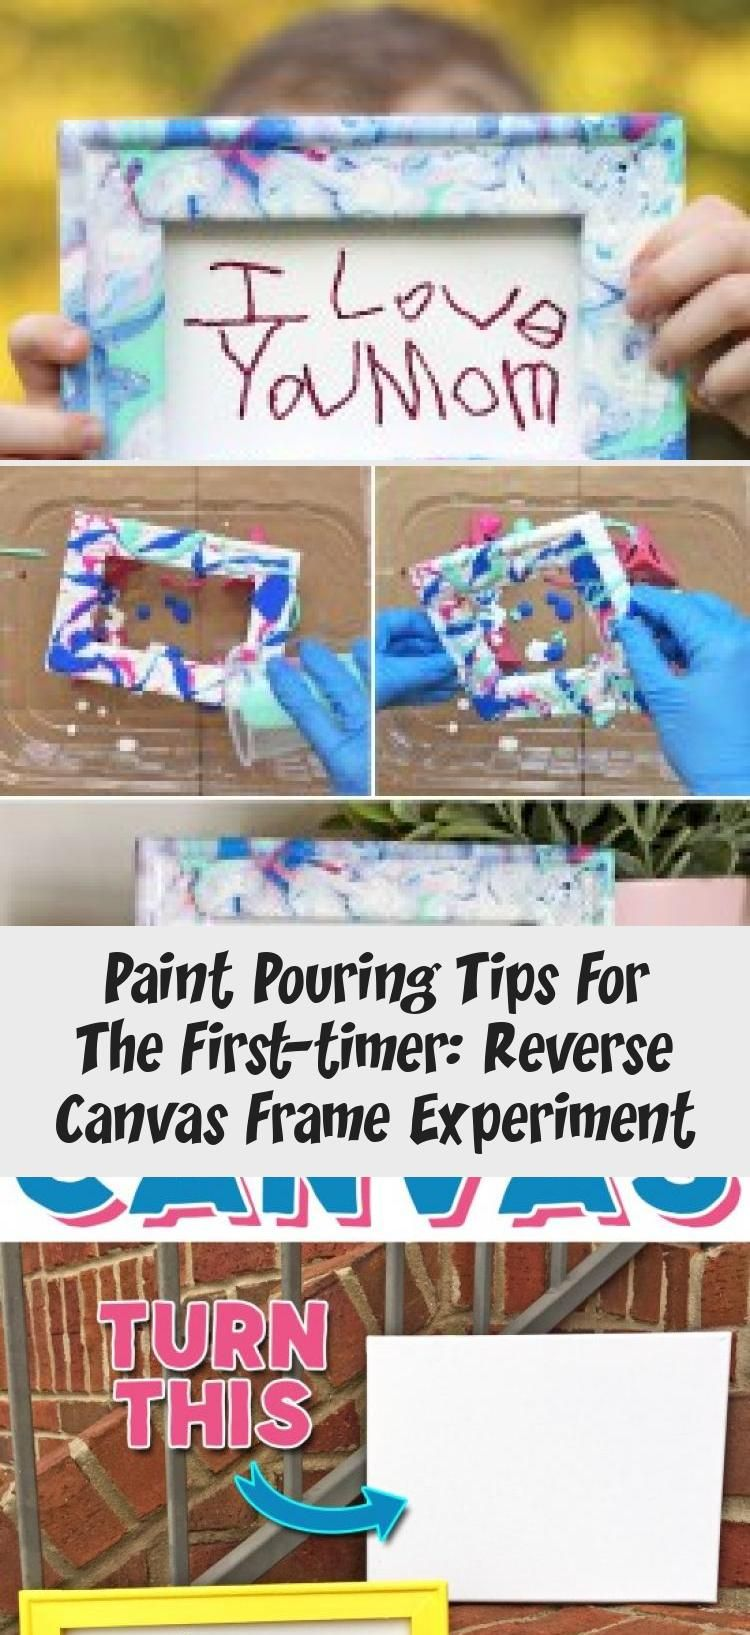 Paint Pouring Tips For The First-timer: Reverse Canvas Frame Experiment Learn how to make your own paint pouring art with these simple tips for beginners! Paint Pouring Tips for the First-Timer: Reverse Canvas Frame Experiment | Where The Smiles Have Been